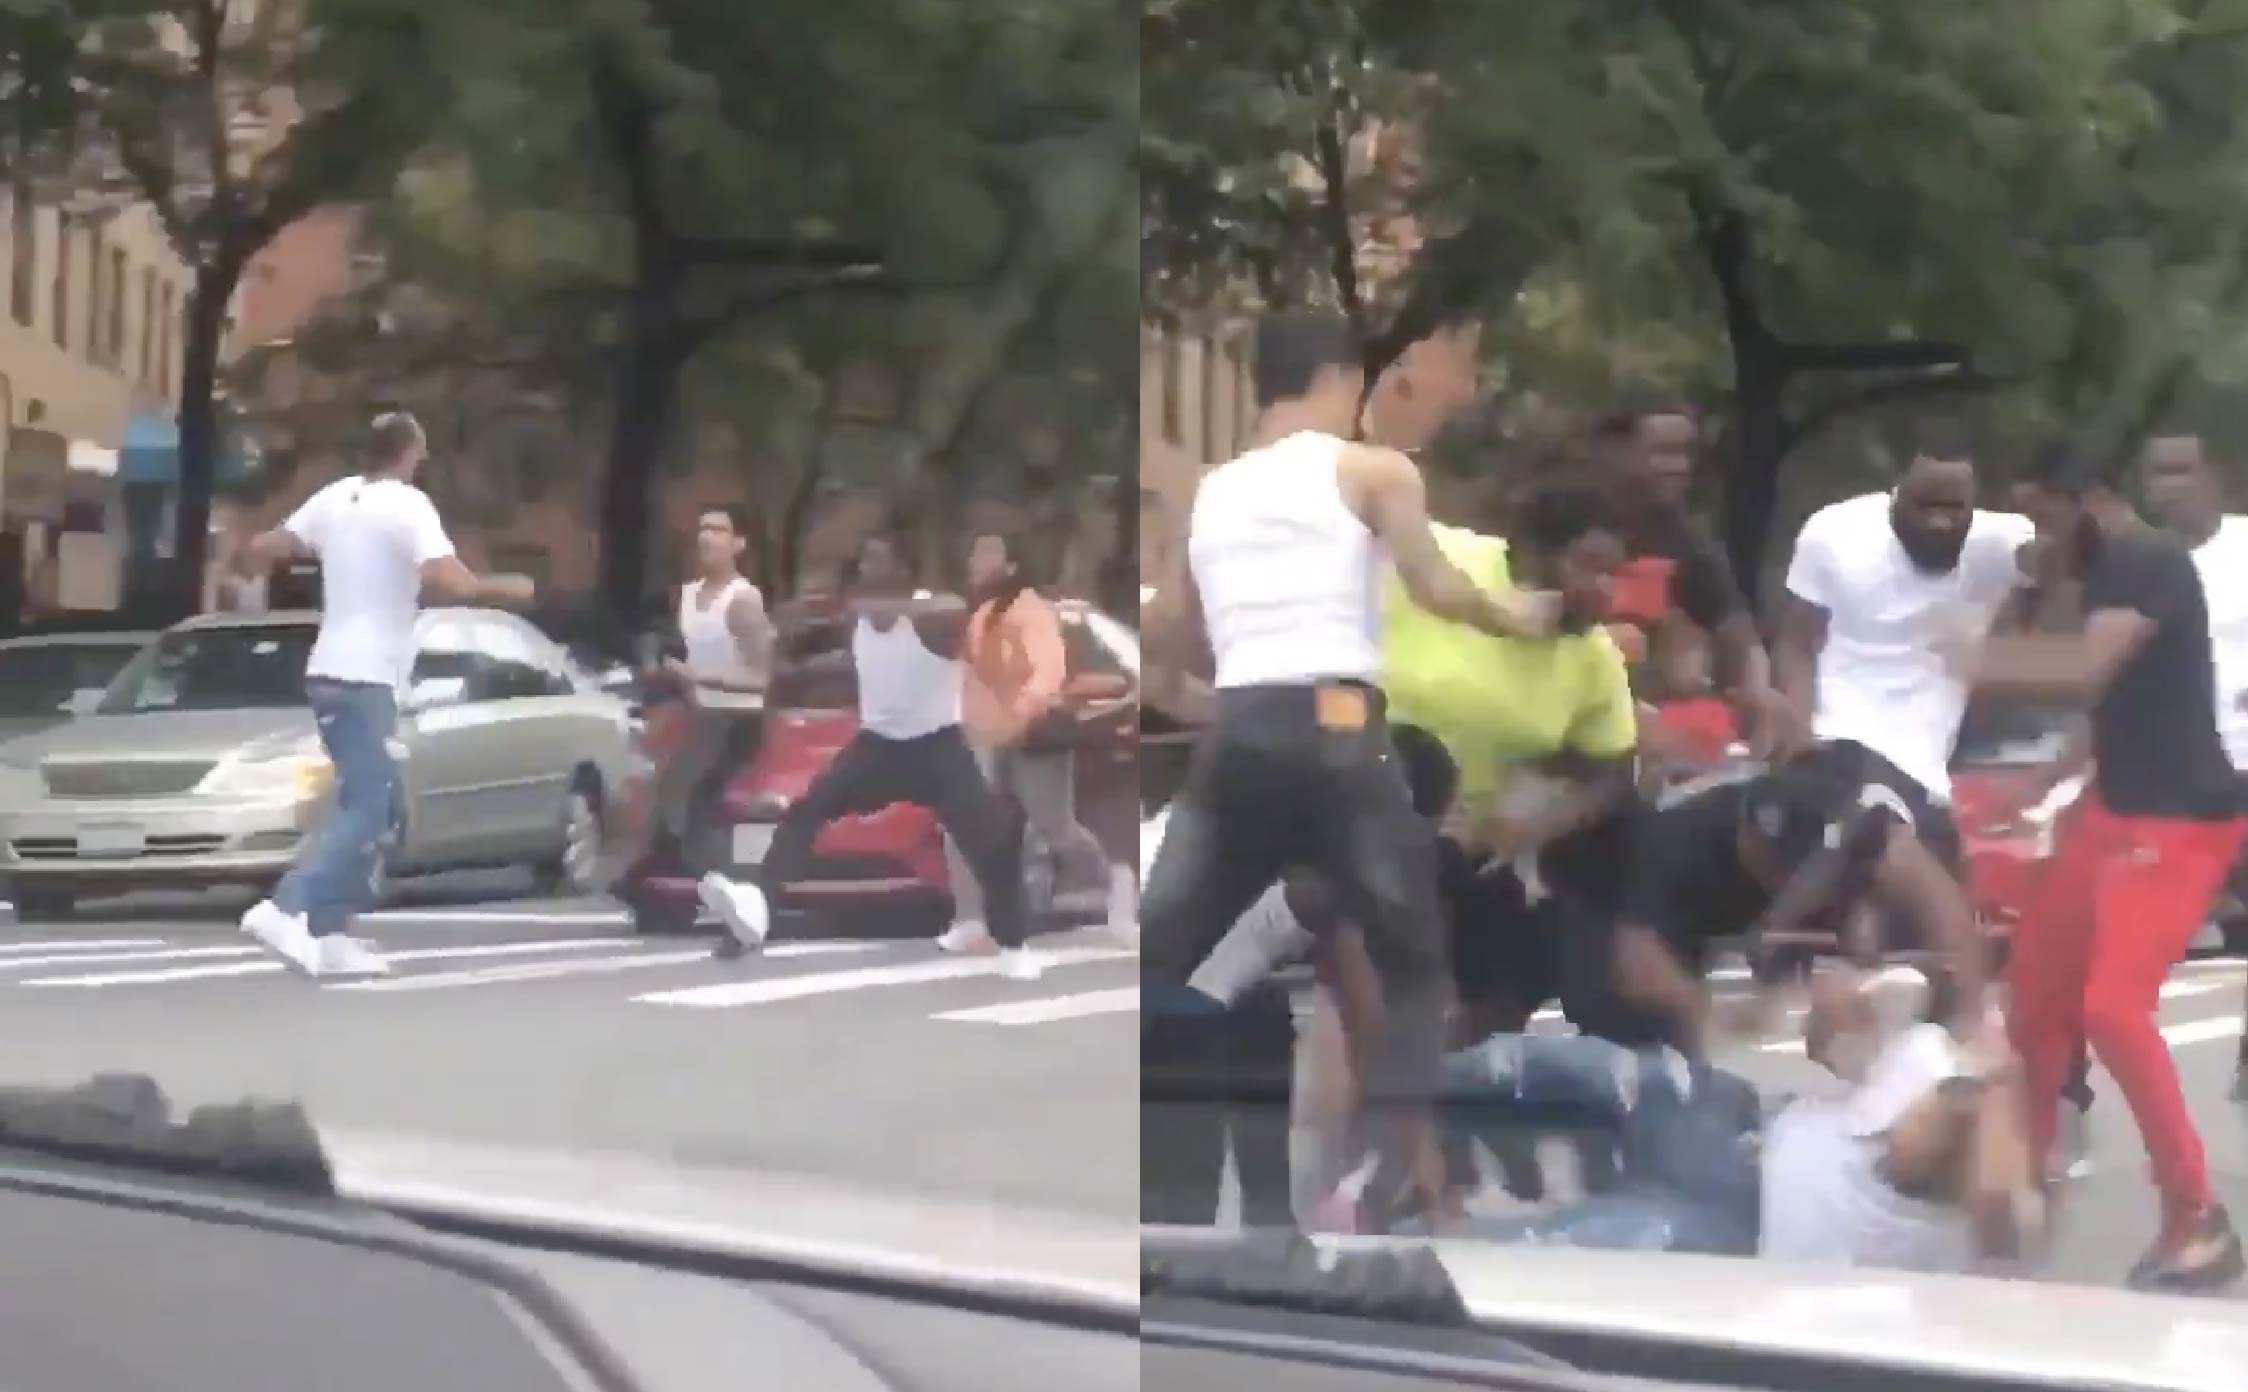 [VIDEO] James Woods Shares Video of New York Man Forced Out of His Car and Beaten Senseless by a Mob in Broad Daylight